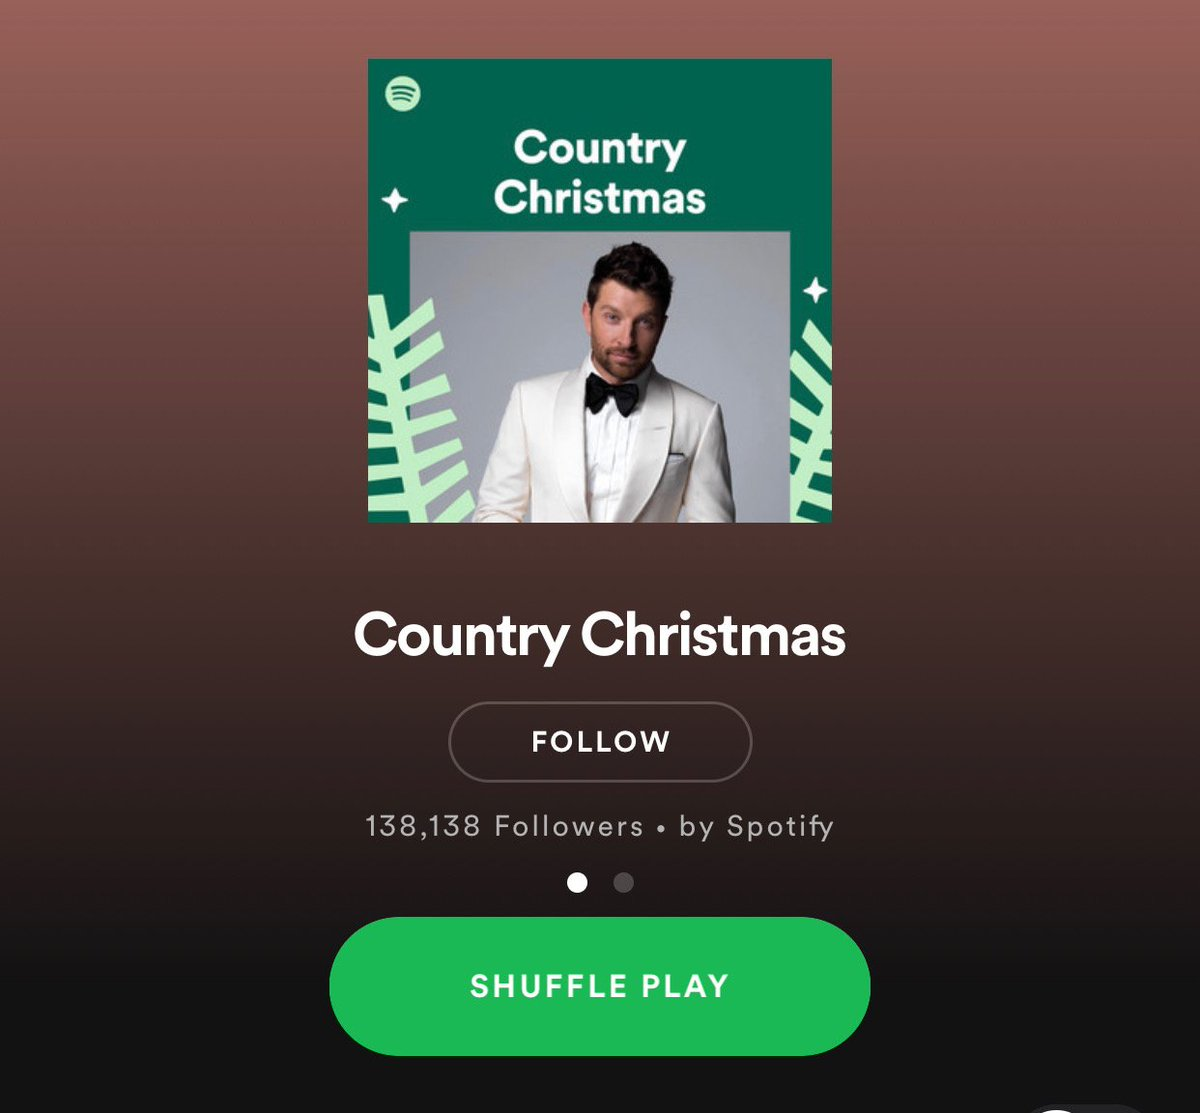 The holidays are just around the corner! Get in the spirit and listen to @Spotify Country Christmas to hear a couple of my favorite Christmas songs from my album, Its The Holiday Season. spoti.fi/2TNLP2c